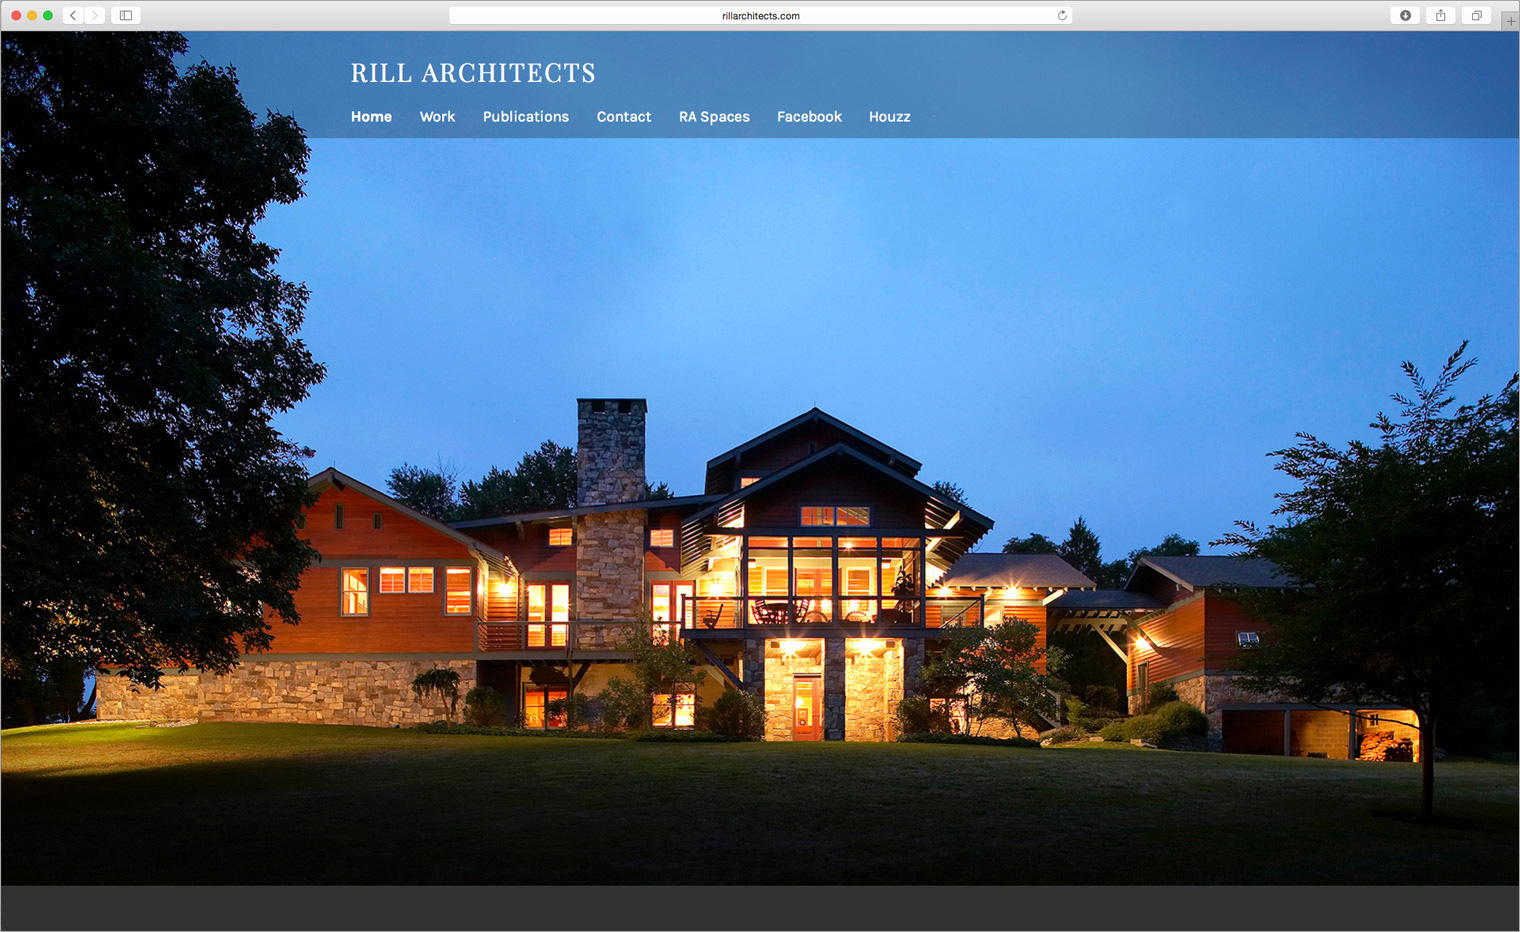 Home page of the Rill Architects website.